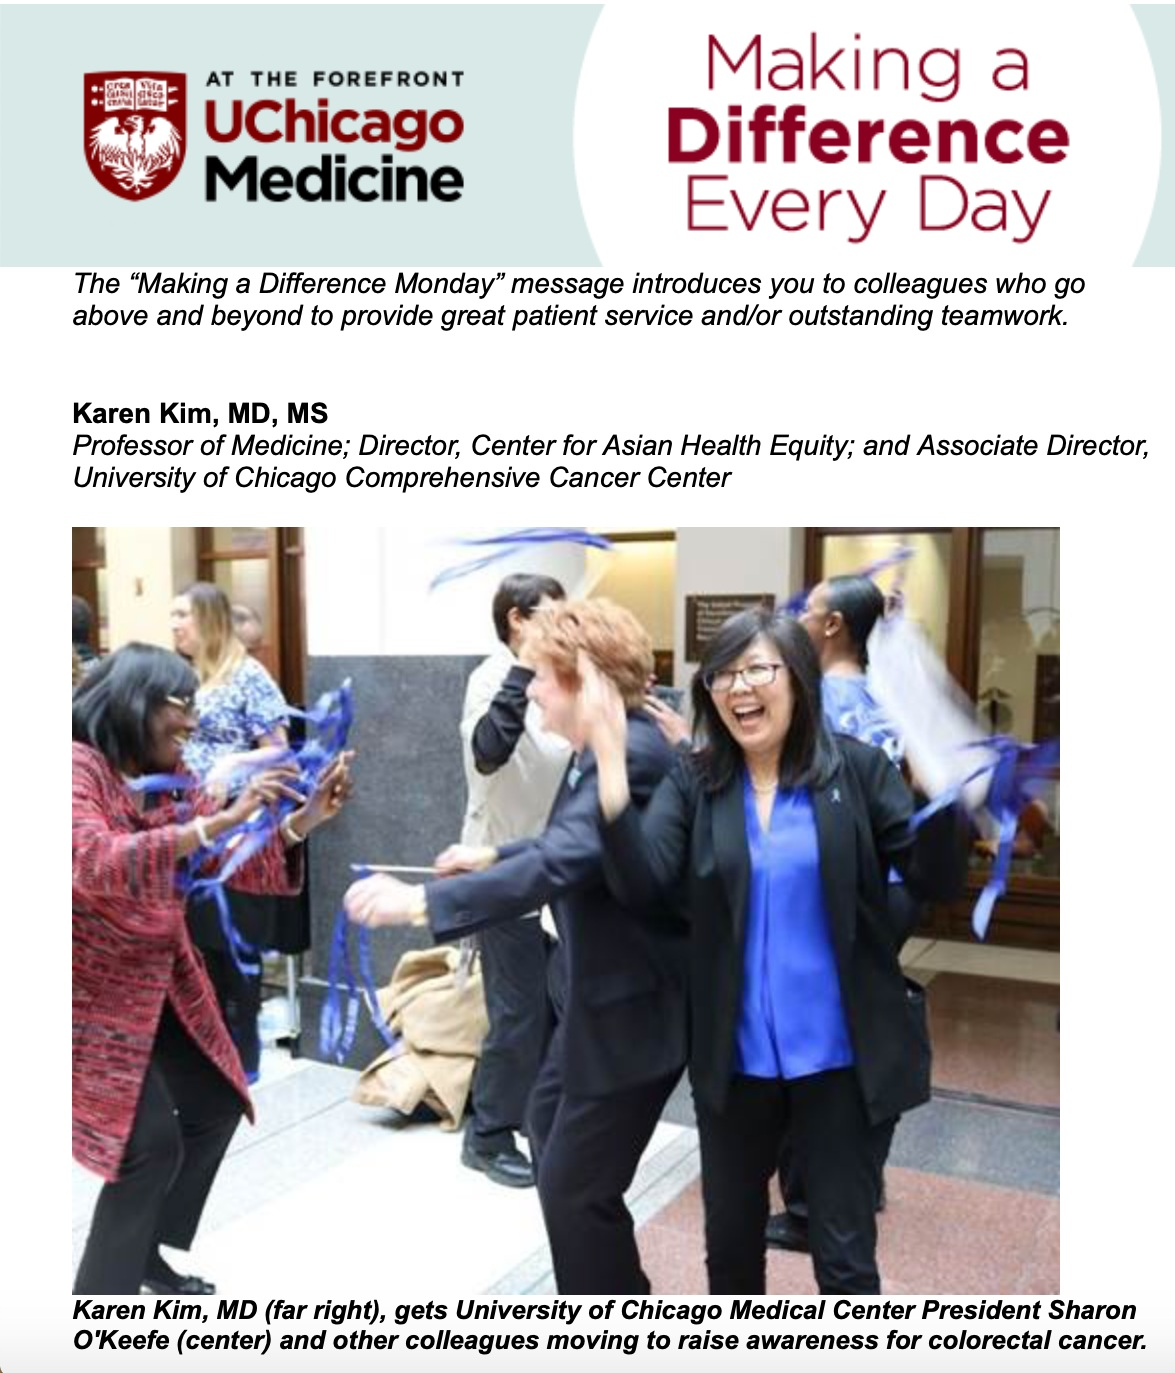 Dr.+Karen+Kim+UCHospital+Making+a+Difference.jpg